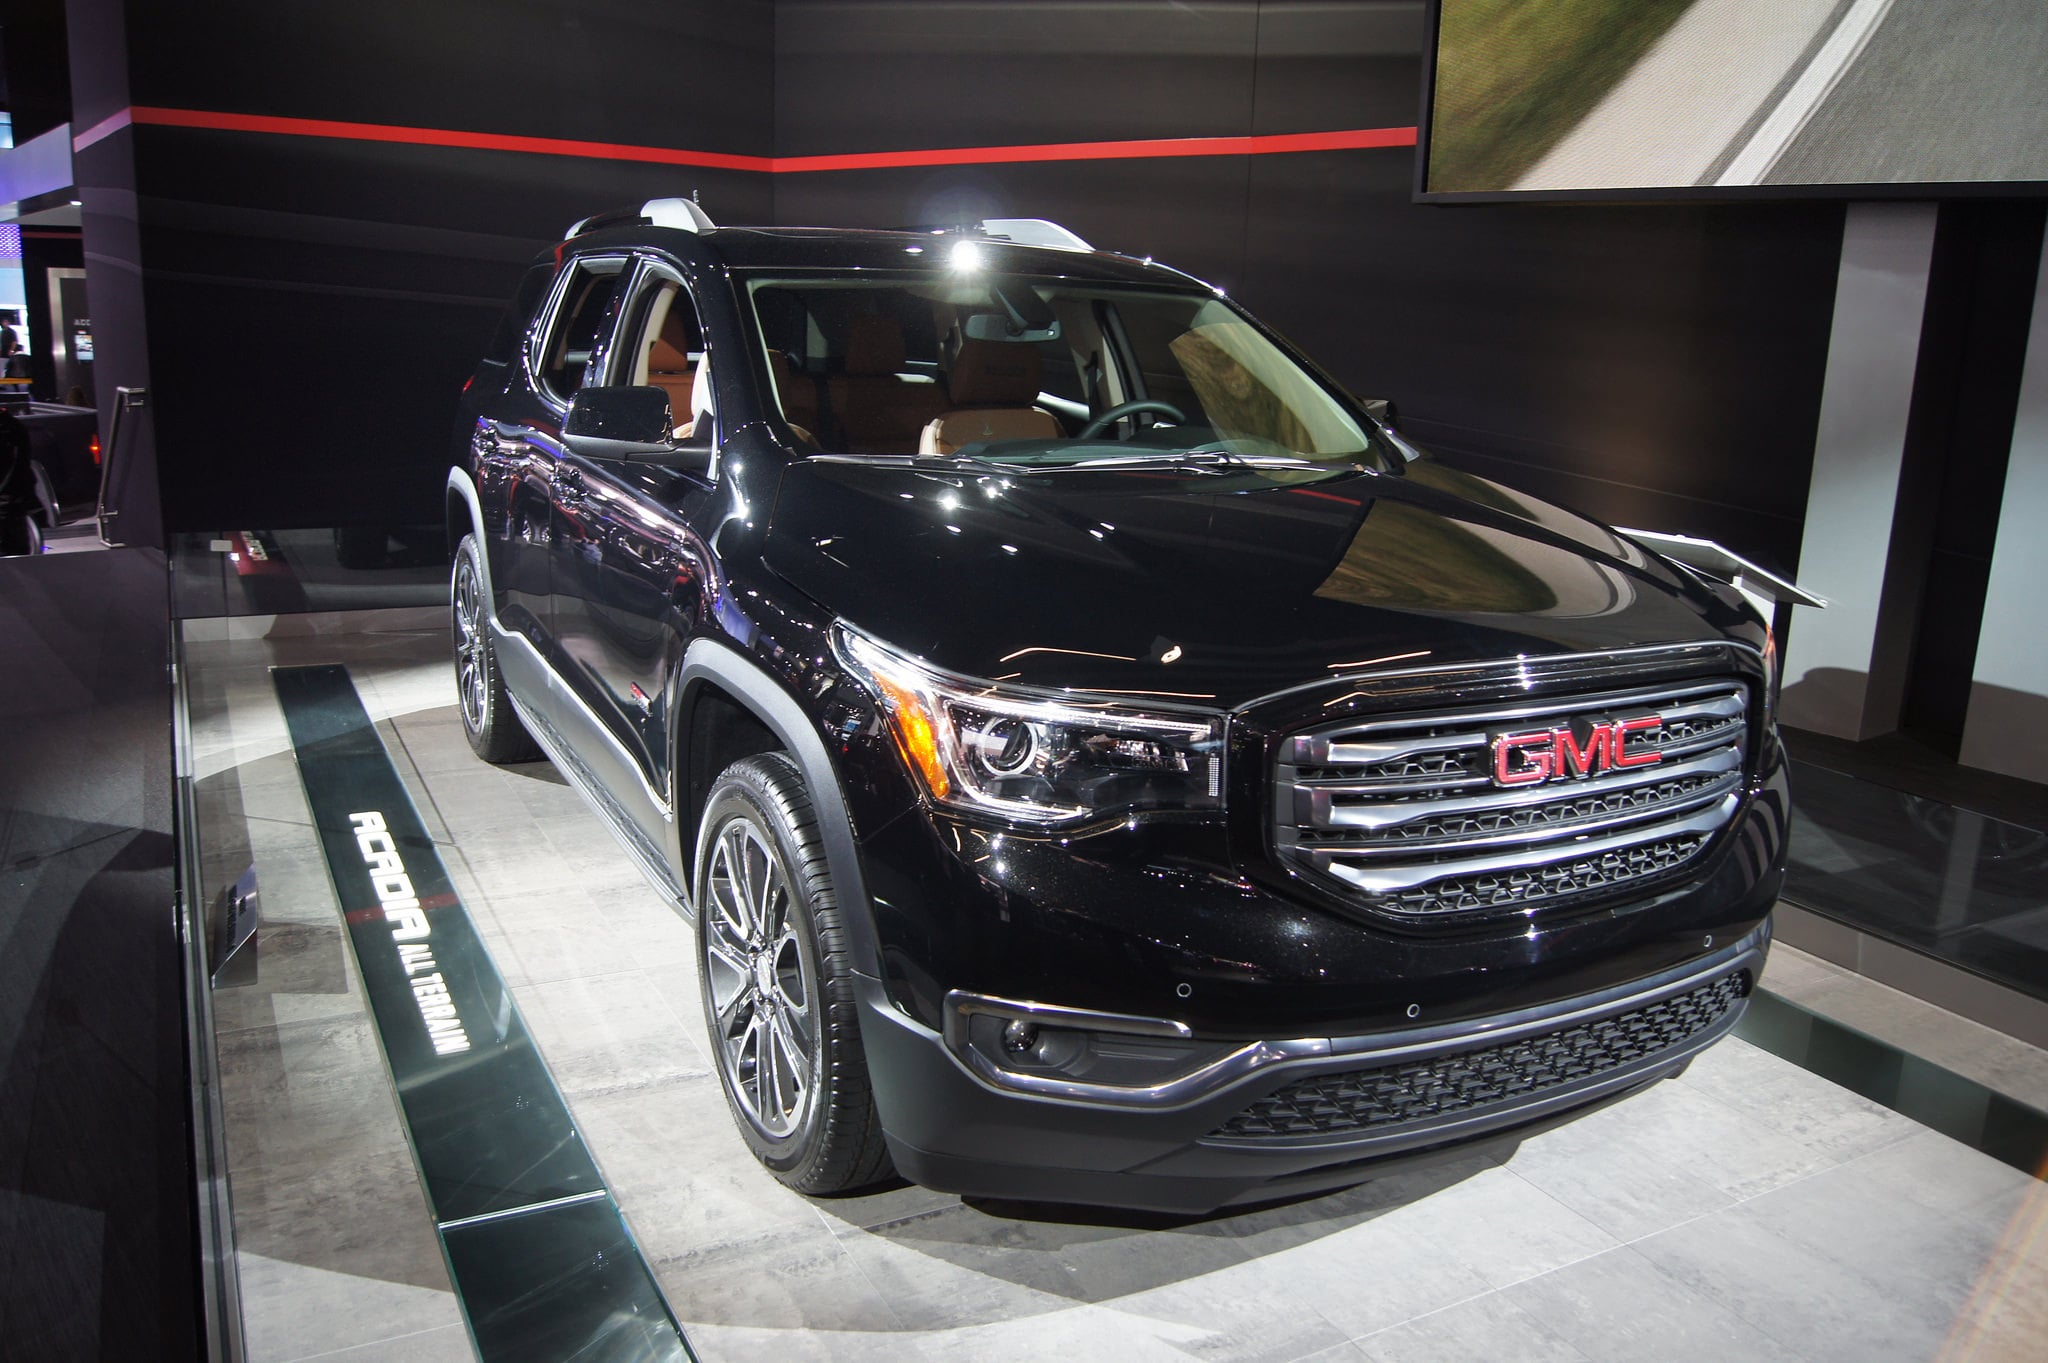 2017 Gmc Acadia Wallpapers Hd High Resolution